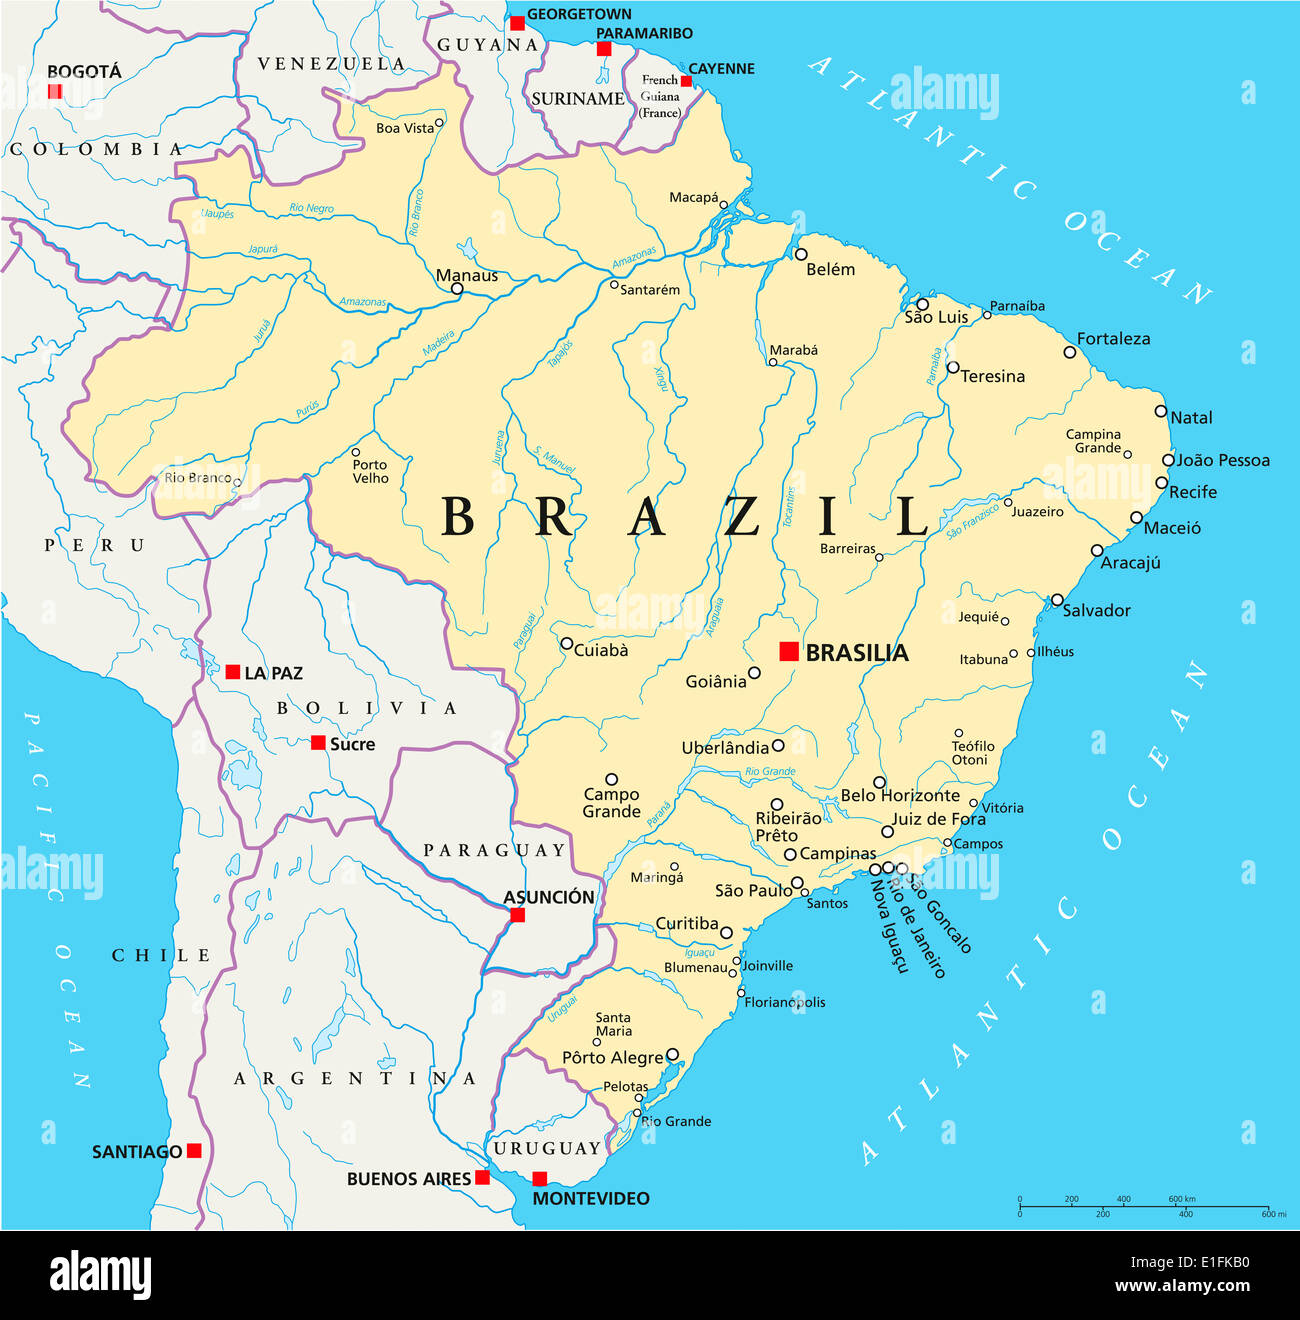 Brazil Political Map With Capital Brasilia National